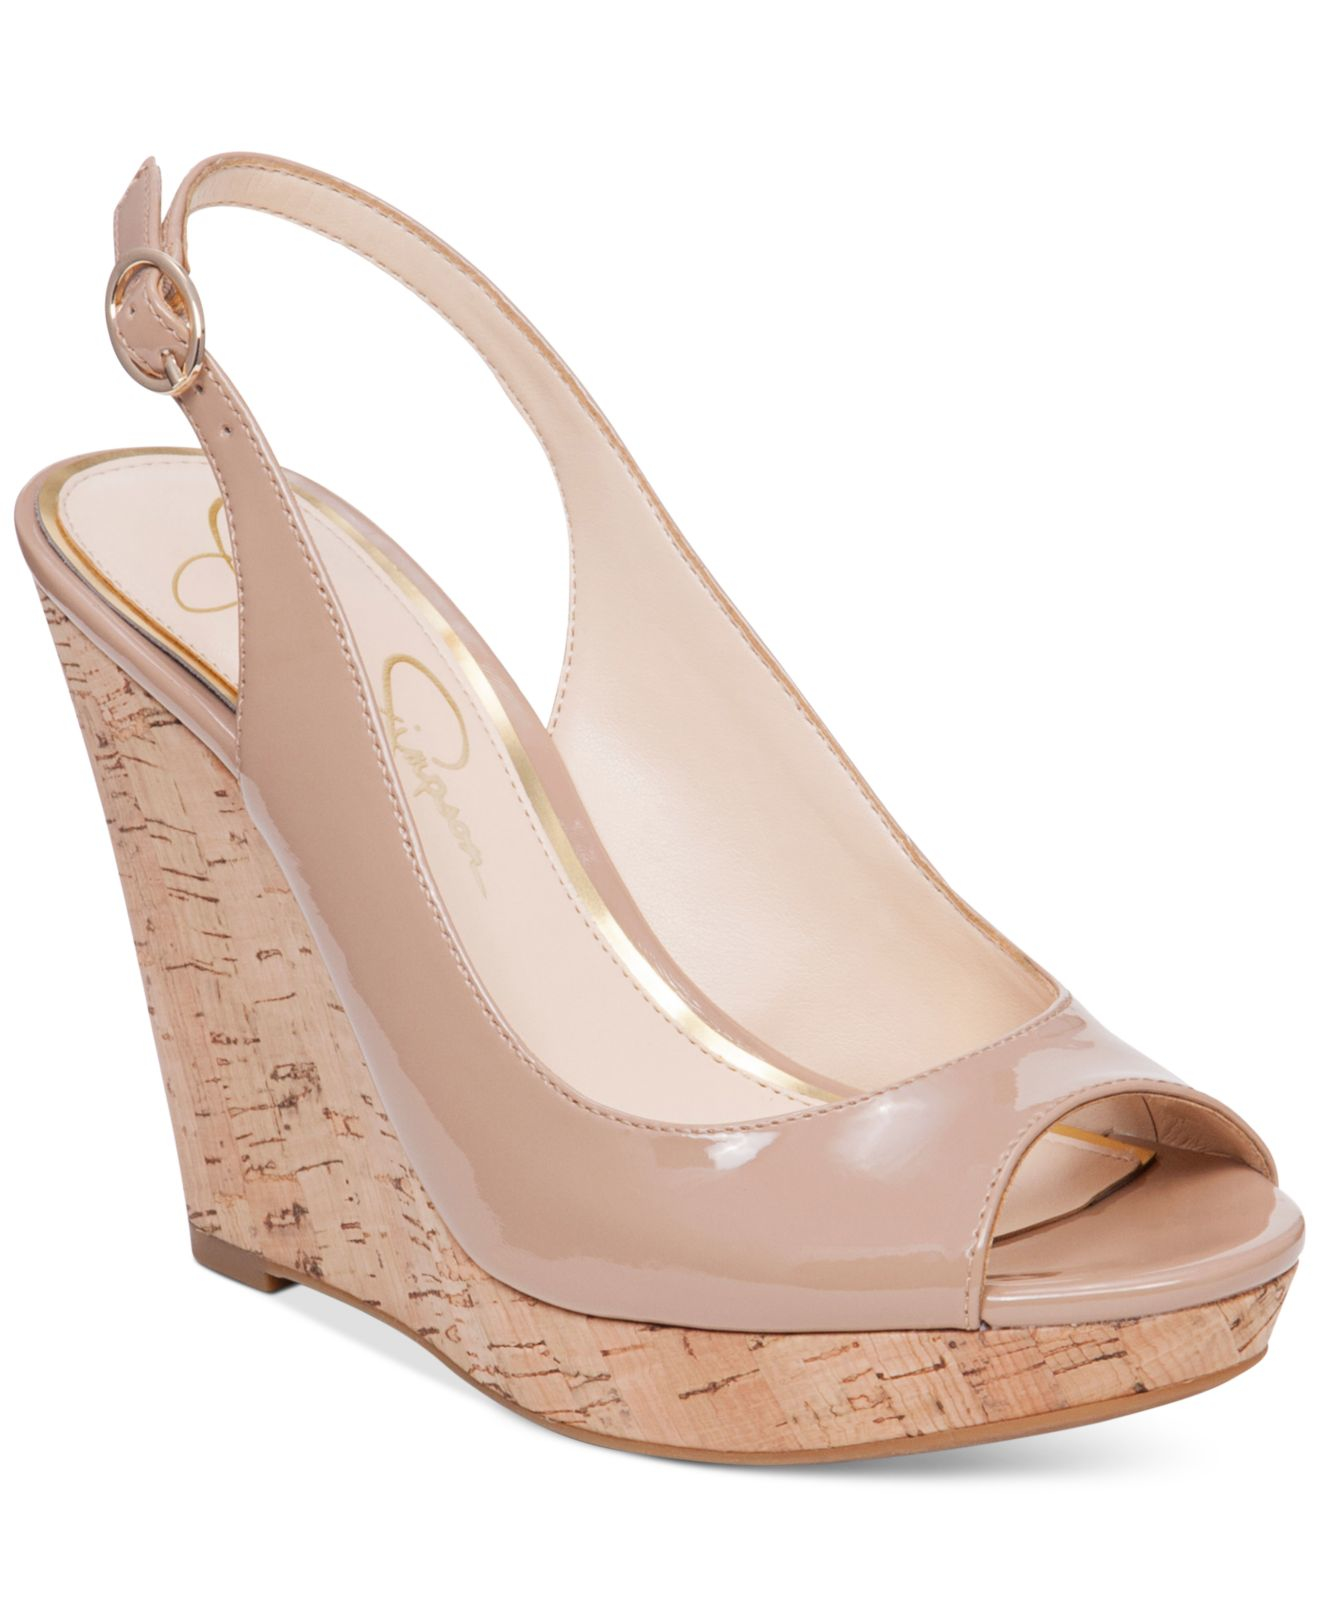 Jessica Simpson Nude Pumps